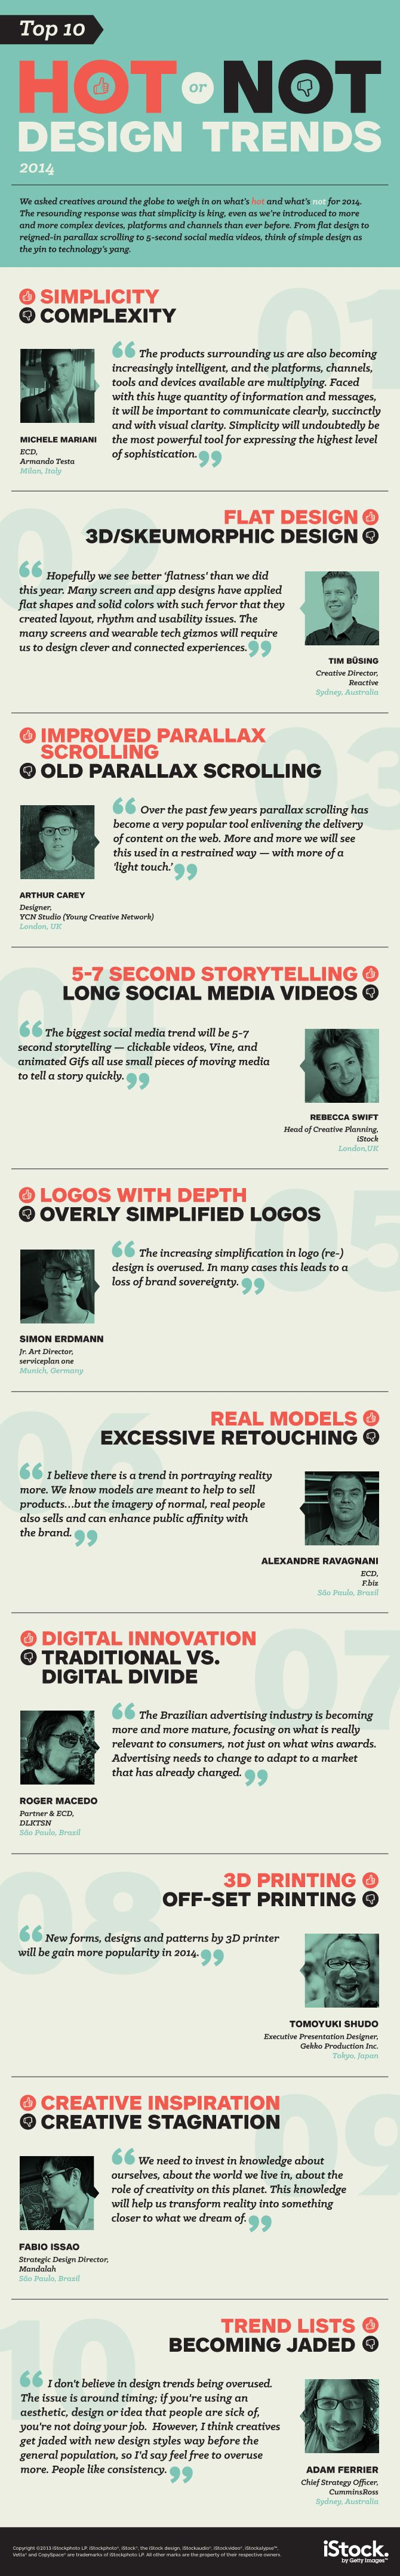 Hot or Not -- which design trends are heating up and which have gone cold?  Web and Graphic Design Trends 2014 Infographic